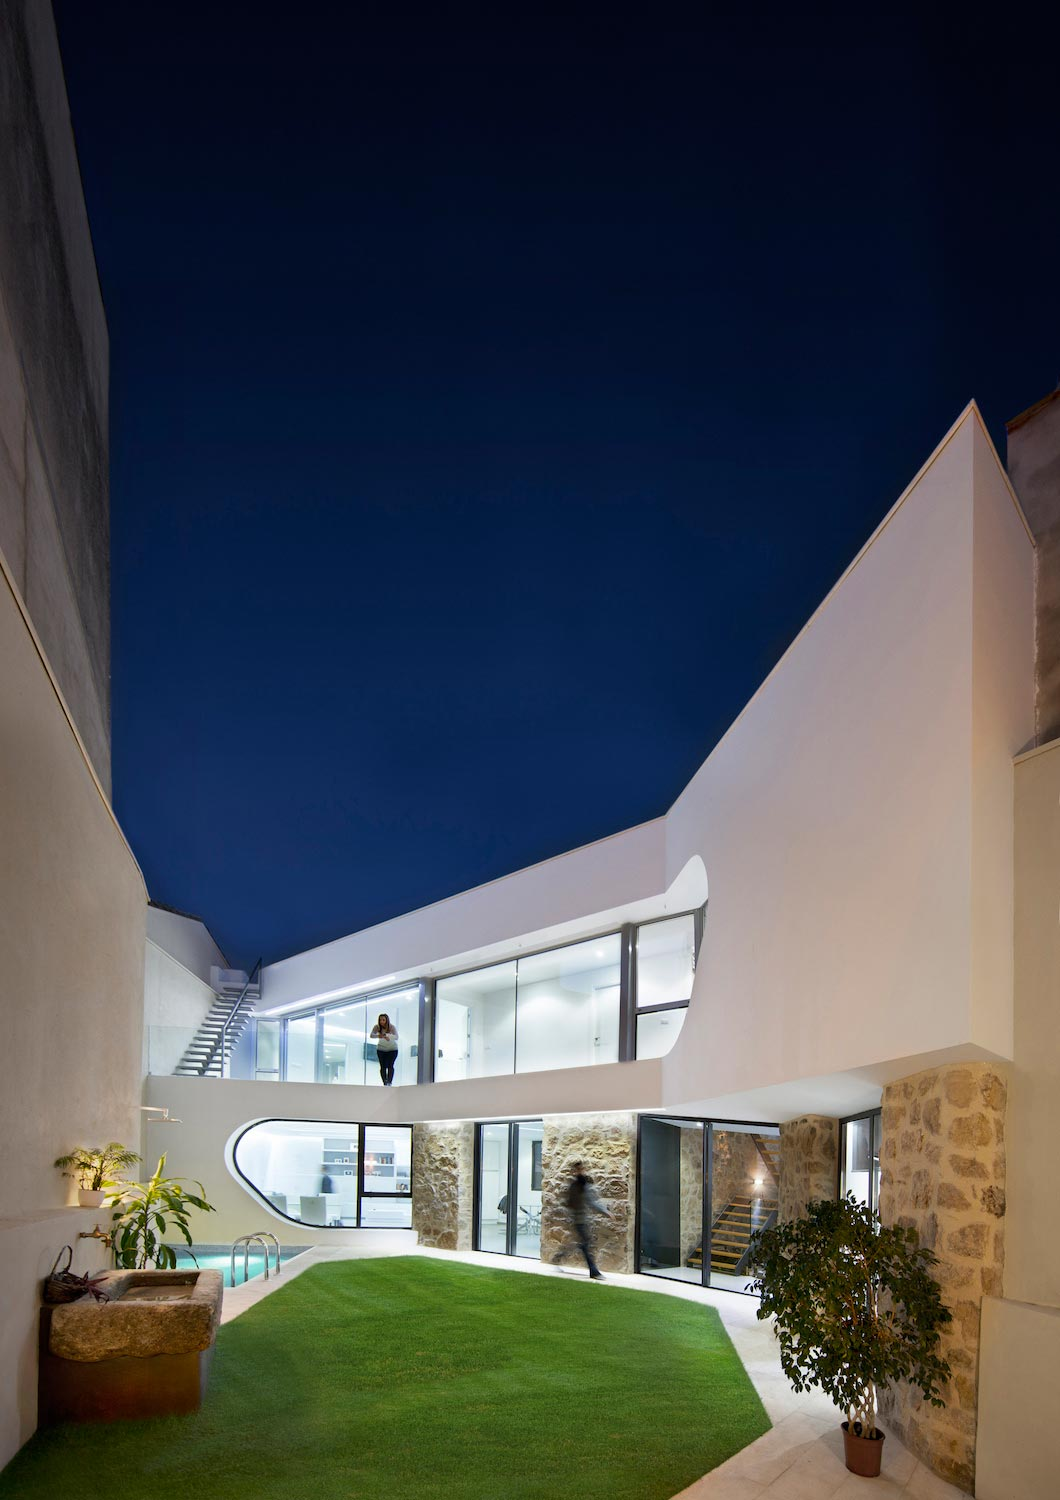 Comprehensive rebuild of Peraleda House by Losada García located in a small and historic town in Cáceres, Spain